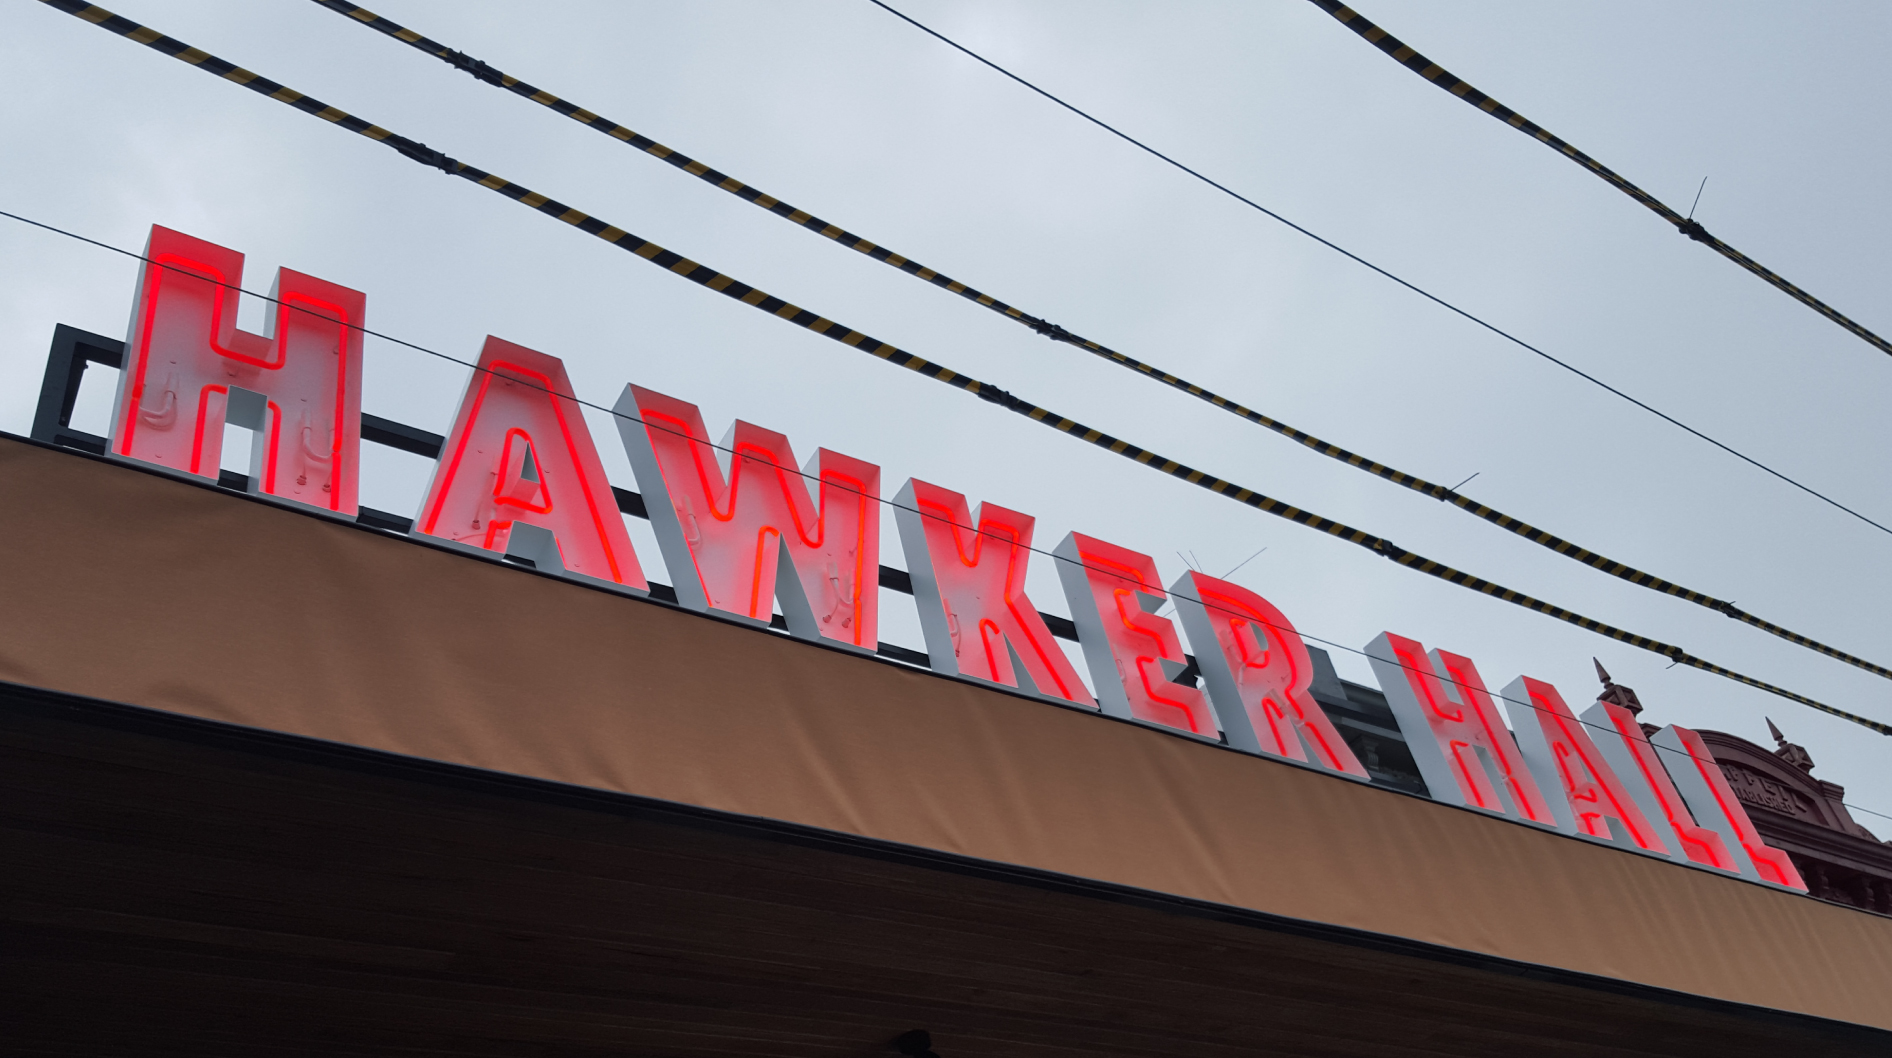 hawker-hall-front-neon-signage-detail